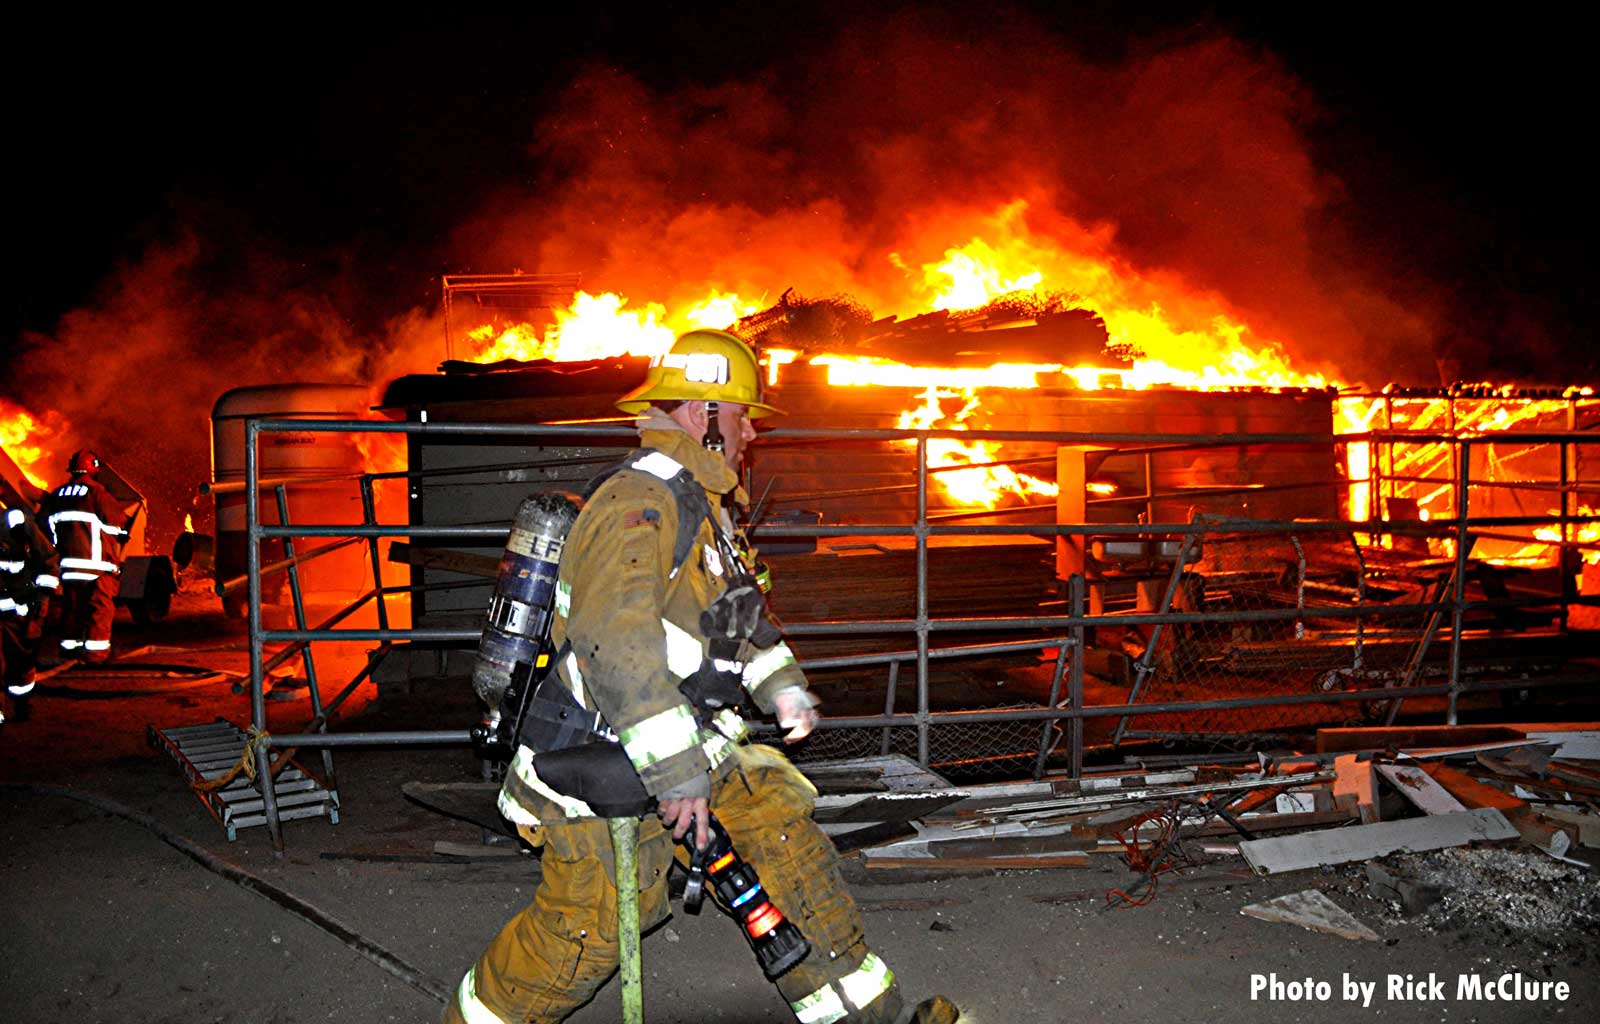 A firefighter strides past a burning pile of debris